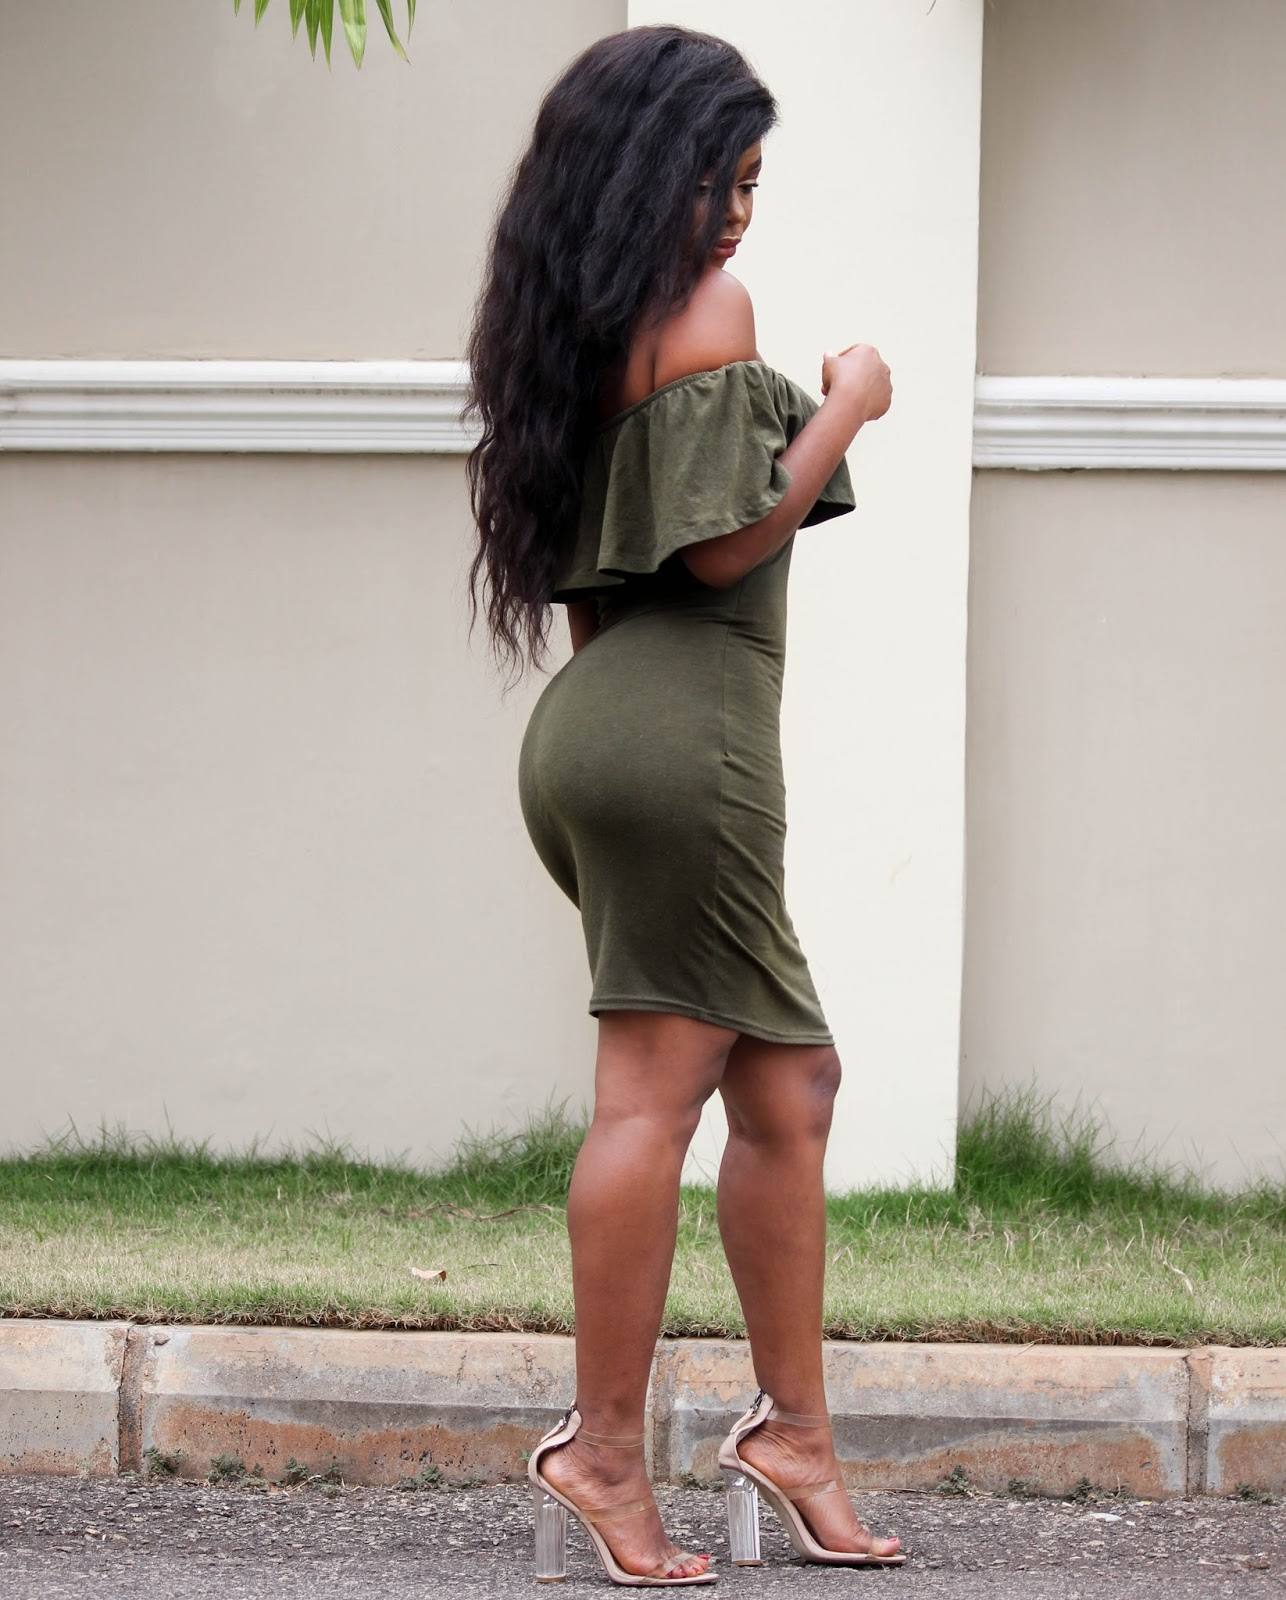 OLIVE GREEN OFF SHOULDER DRESS - Olive Green Off Shoulder Bodycon Dress from Mr. Price